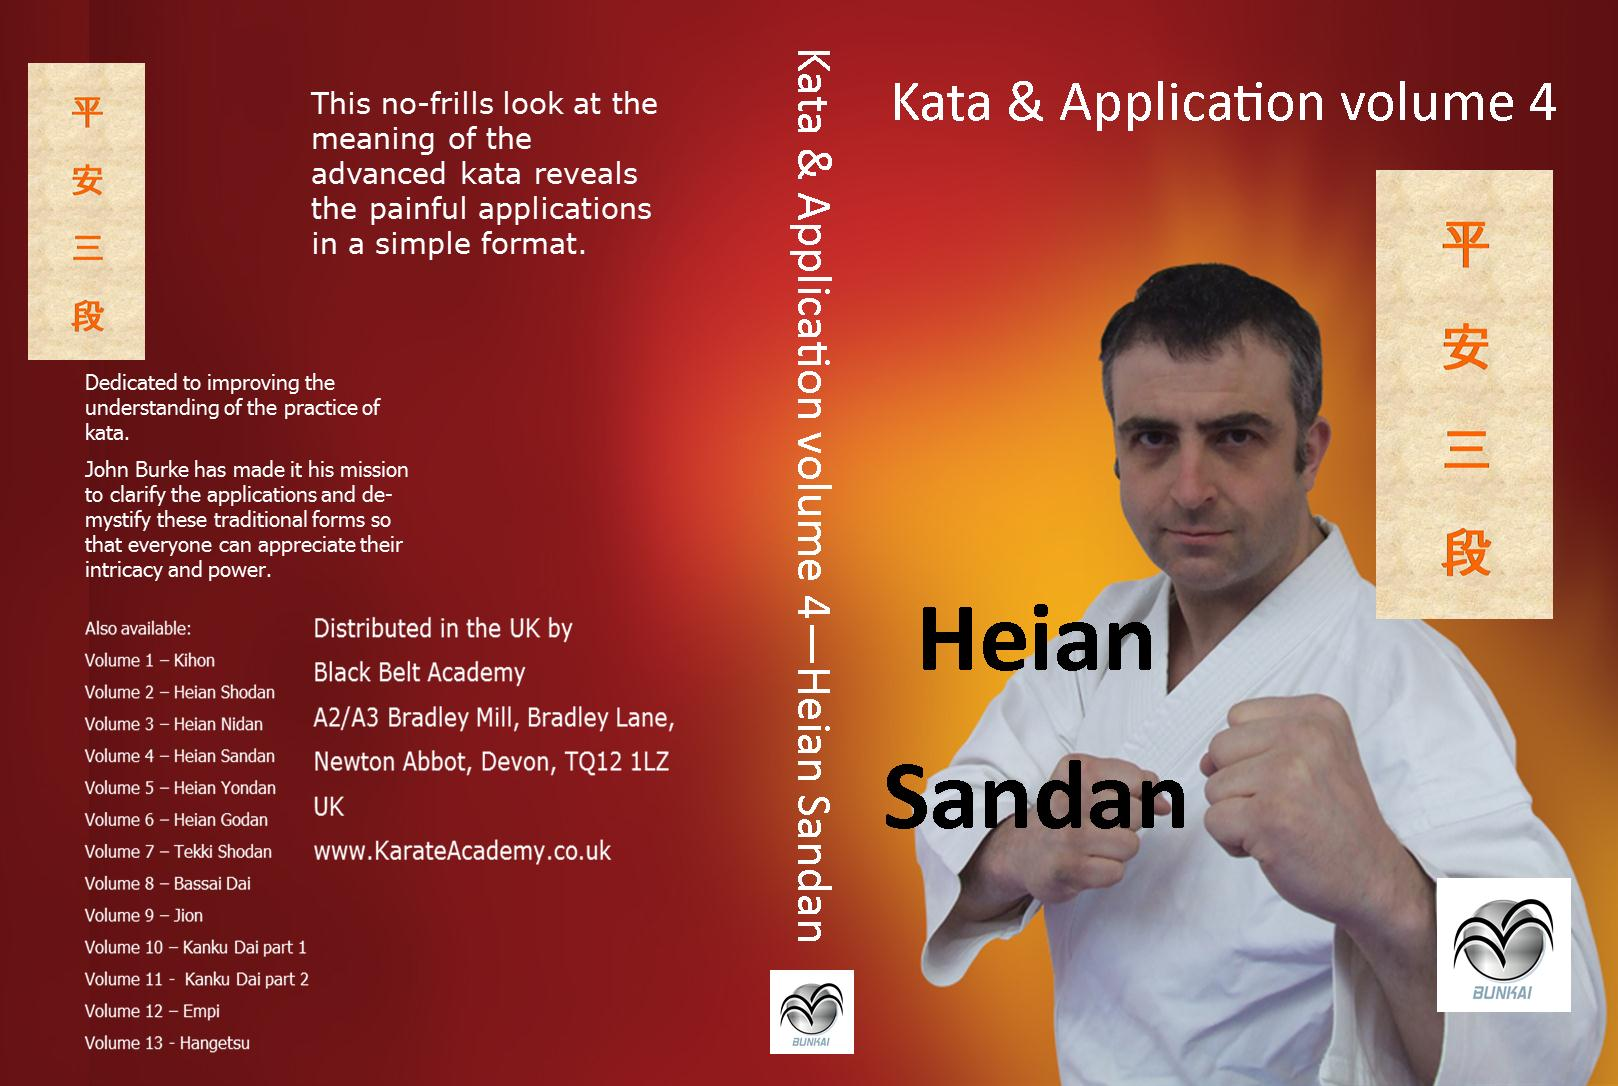 heian sandan bunkai applications dvd